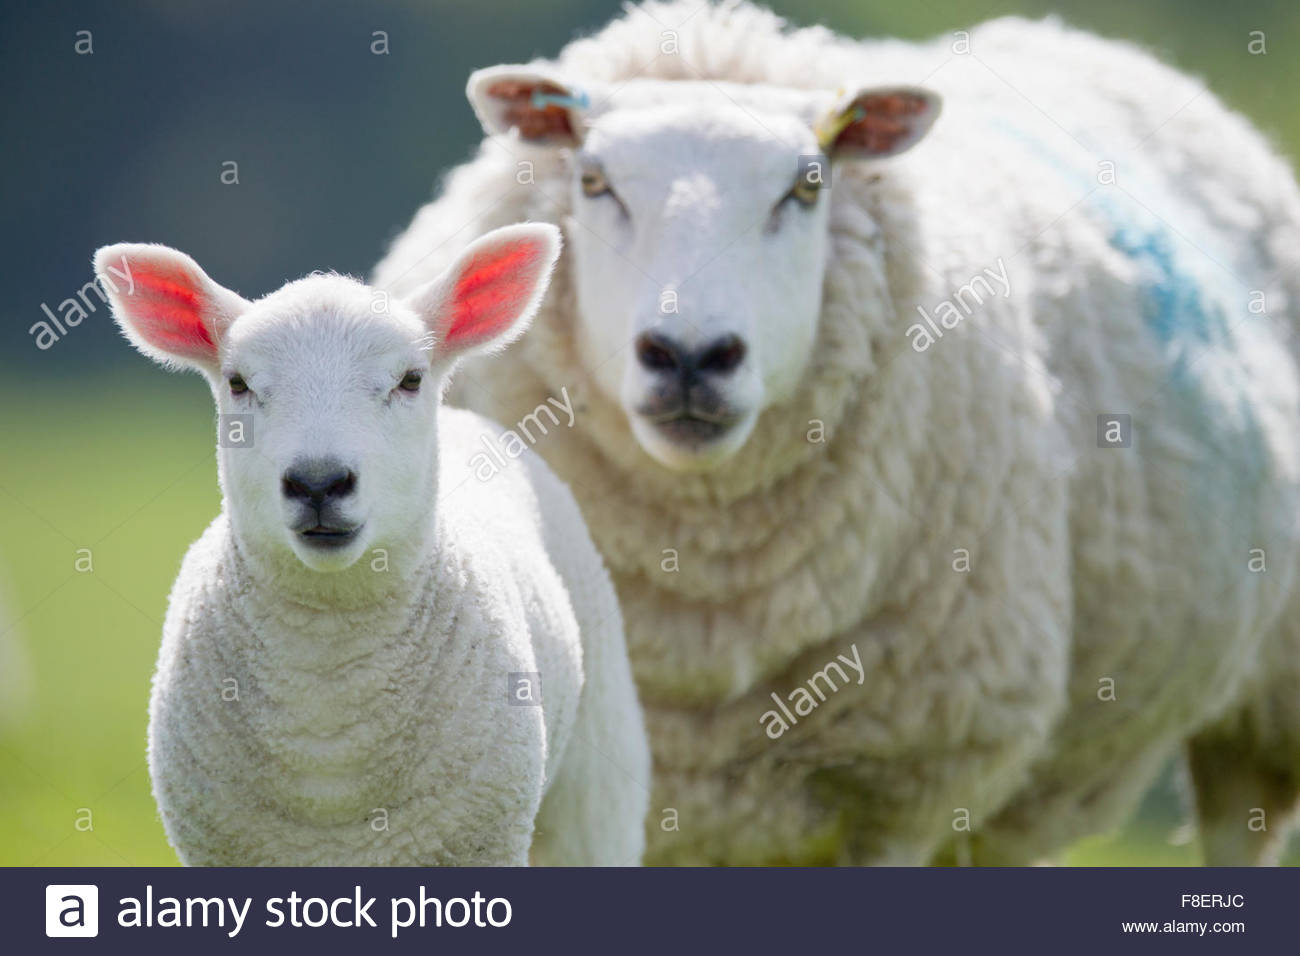 Portrait of sheep and lamb, focus on foreground - Stock Image